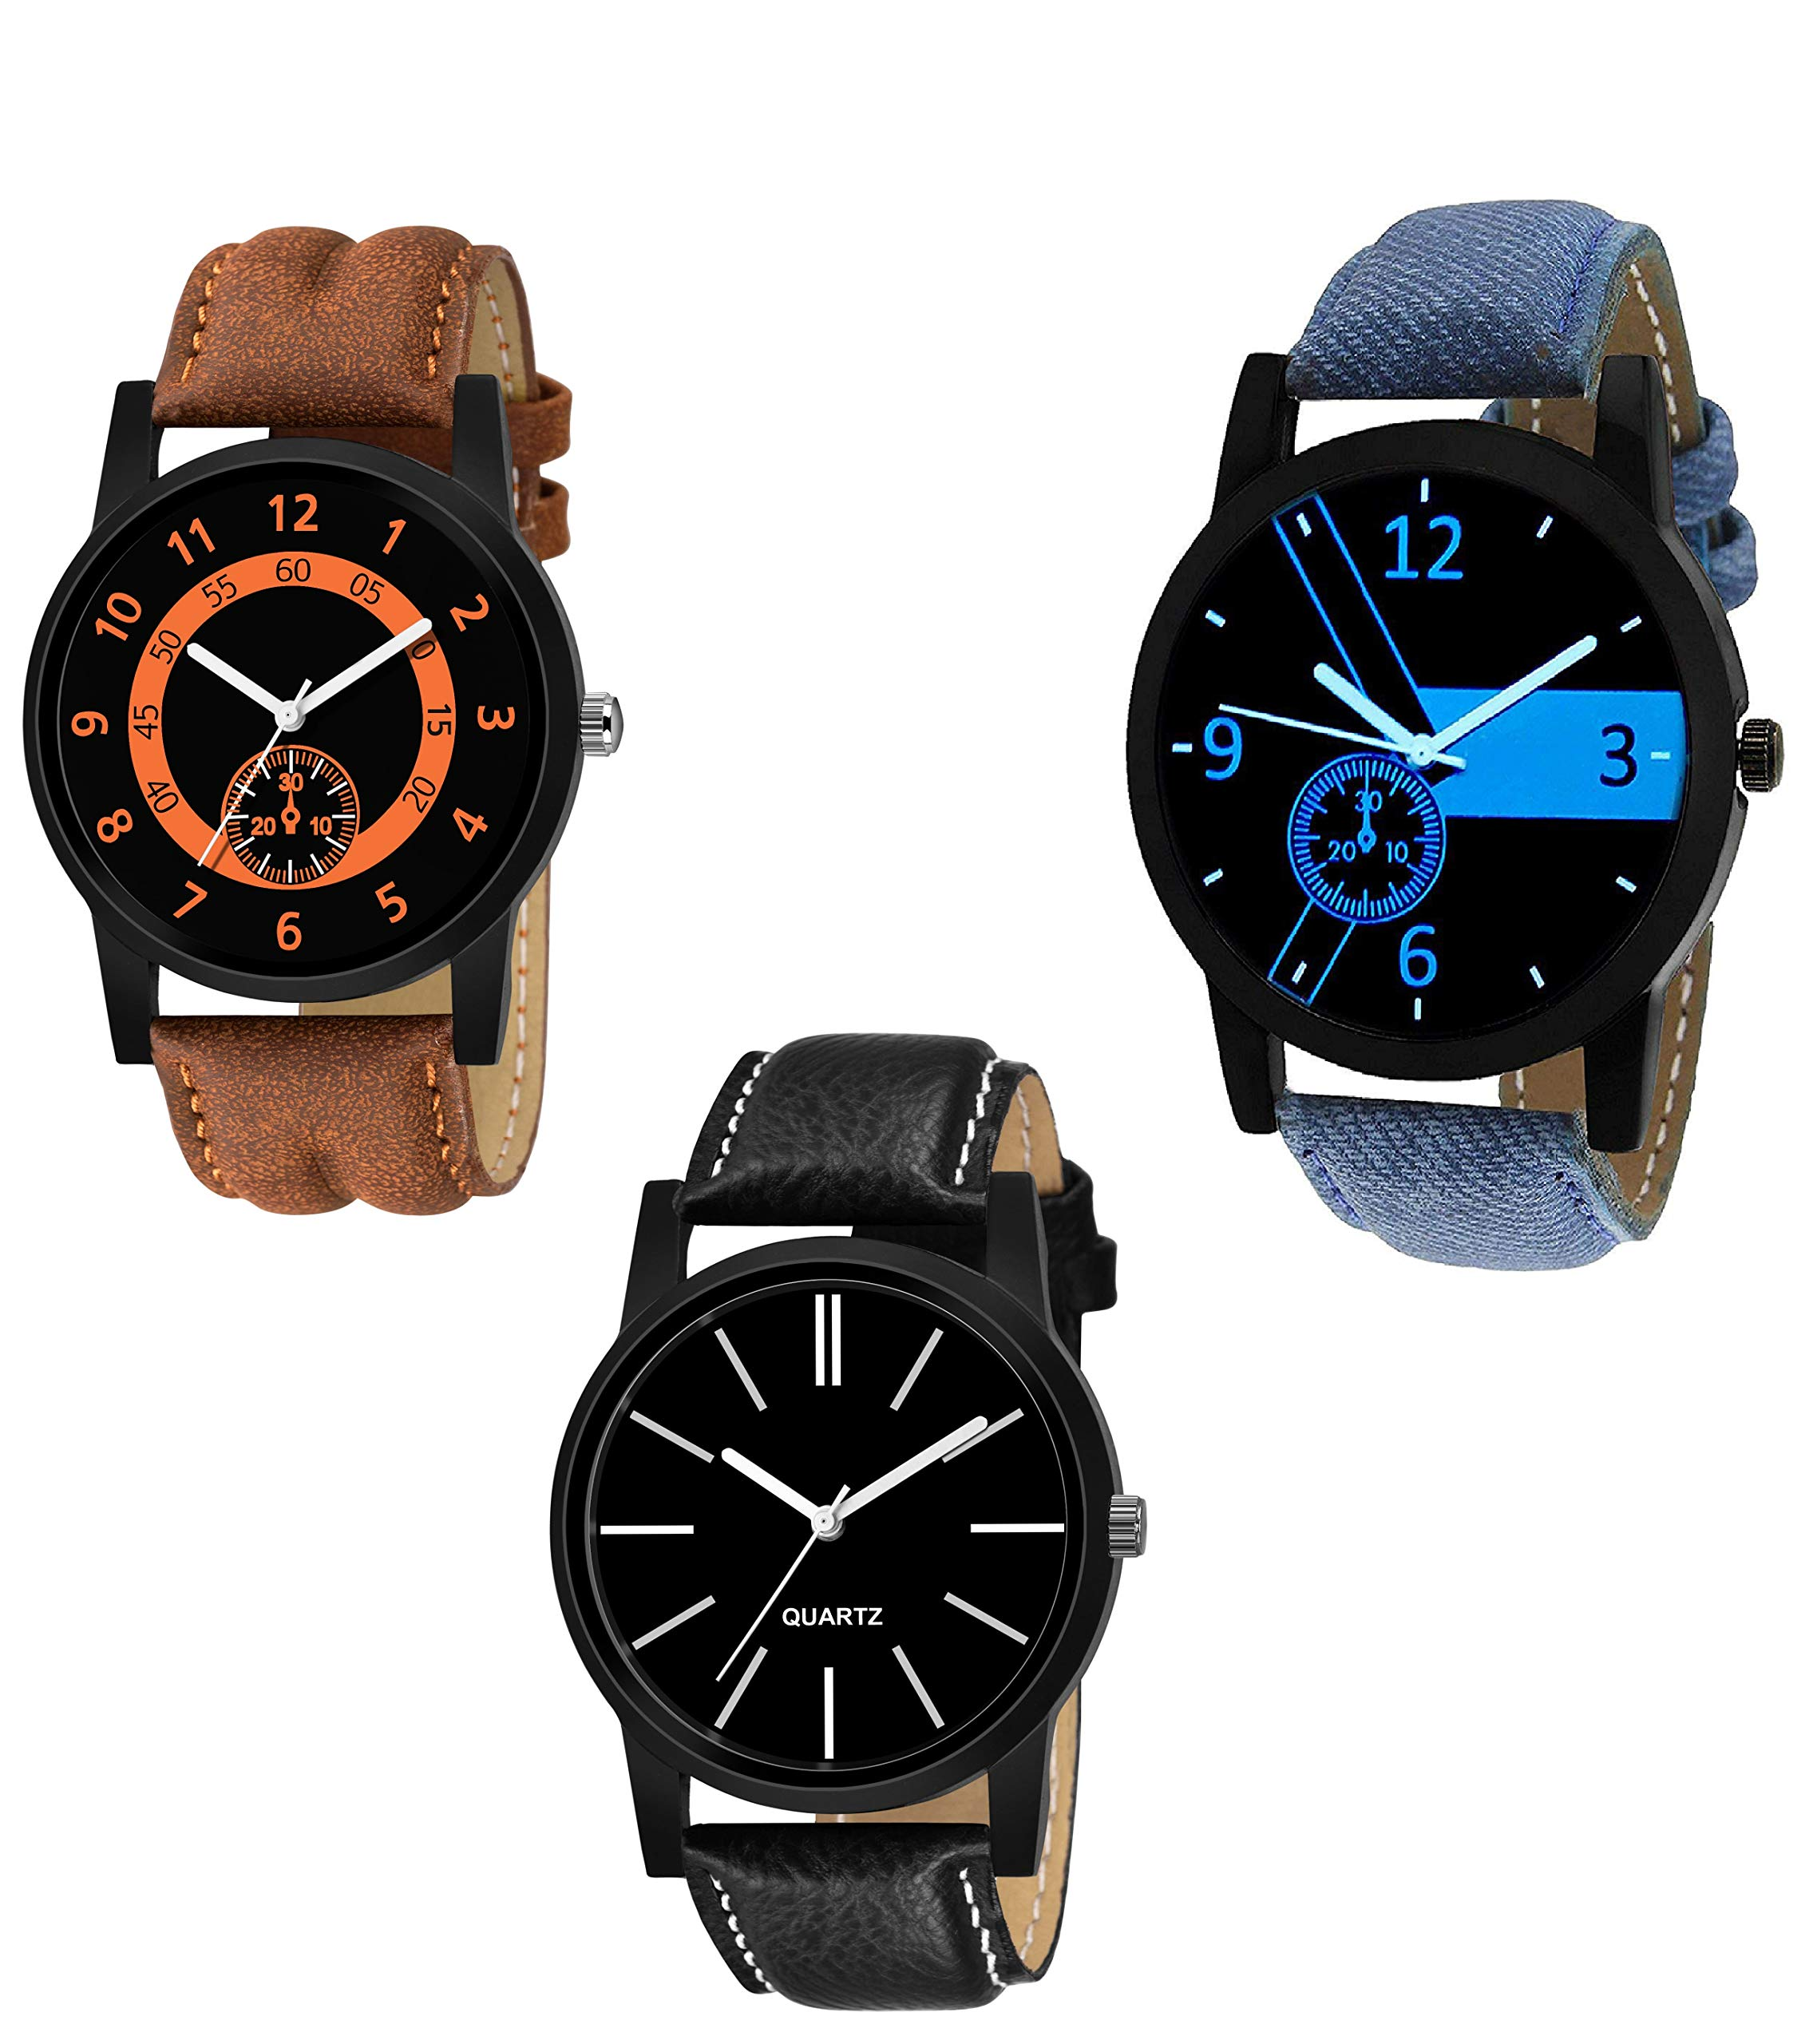 KDENTERPRISE Analog Men's Boy's Watches Pack of 3 product image